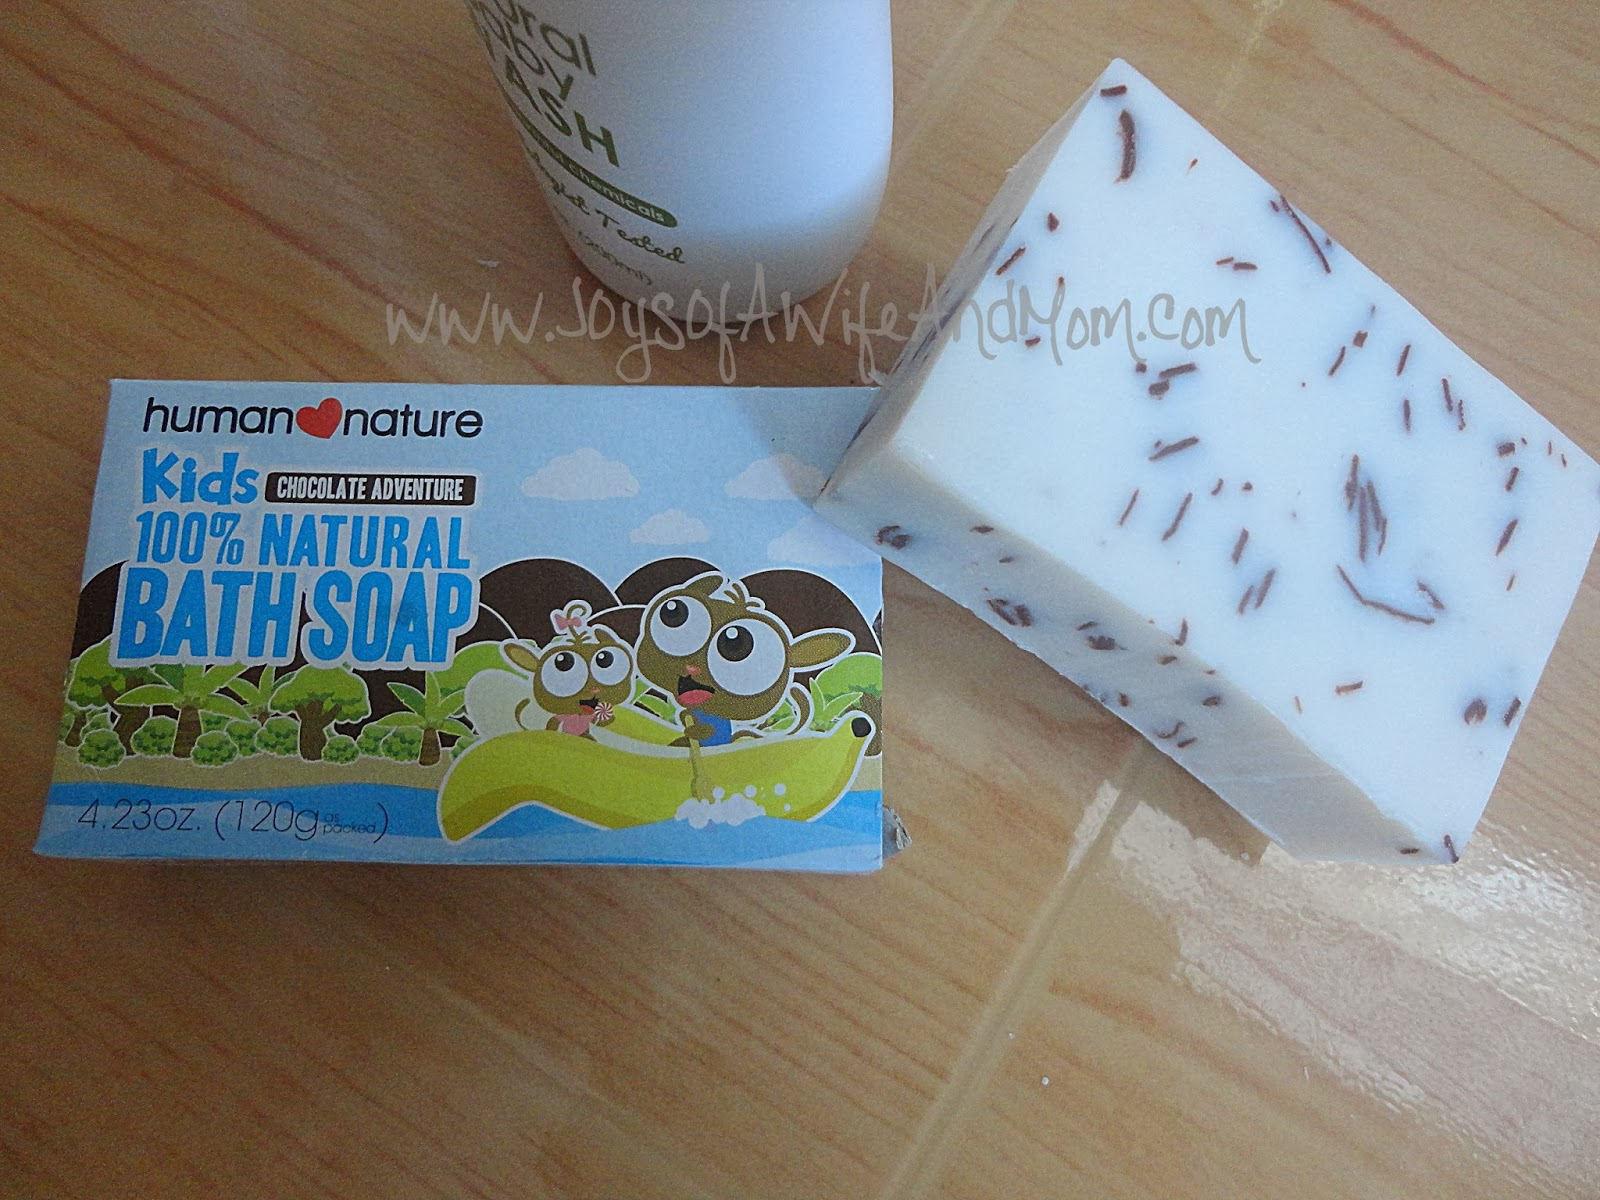 Product Review: Human ♥ Nature Kids 100% Natural Bath Soap (Chocolate Adventure)